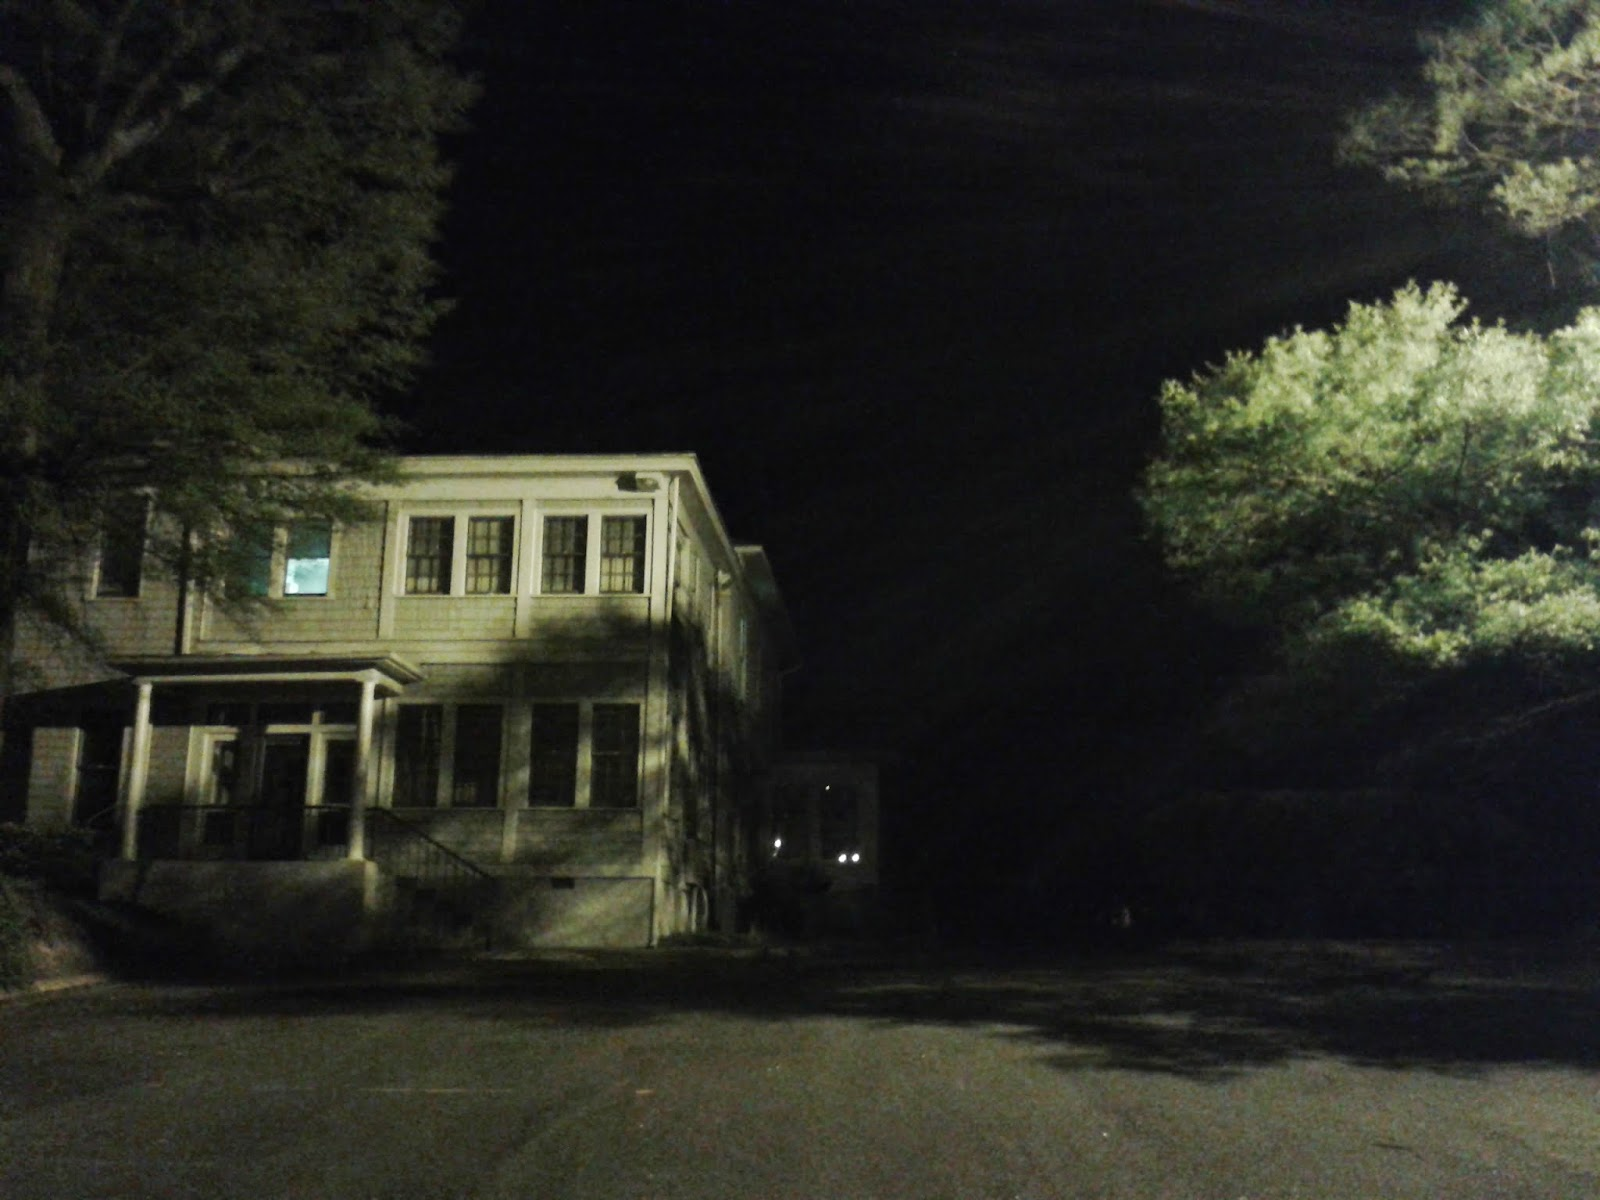 Floodlit House By Christopher Kyba Is Licensed Under A. Creative Commons  Attribution 4.0 International License.